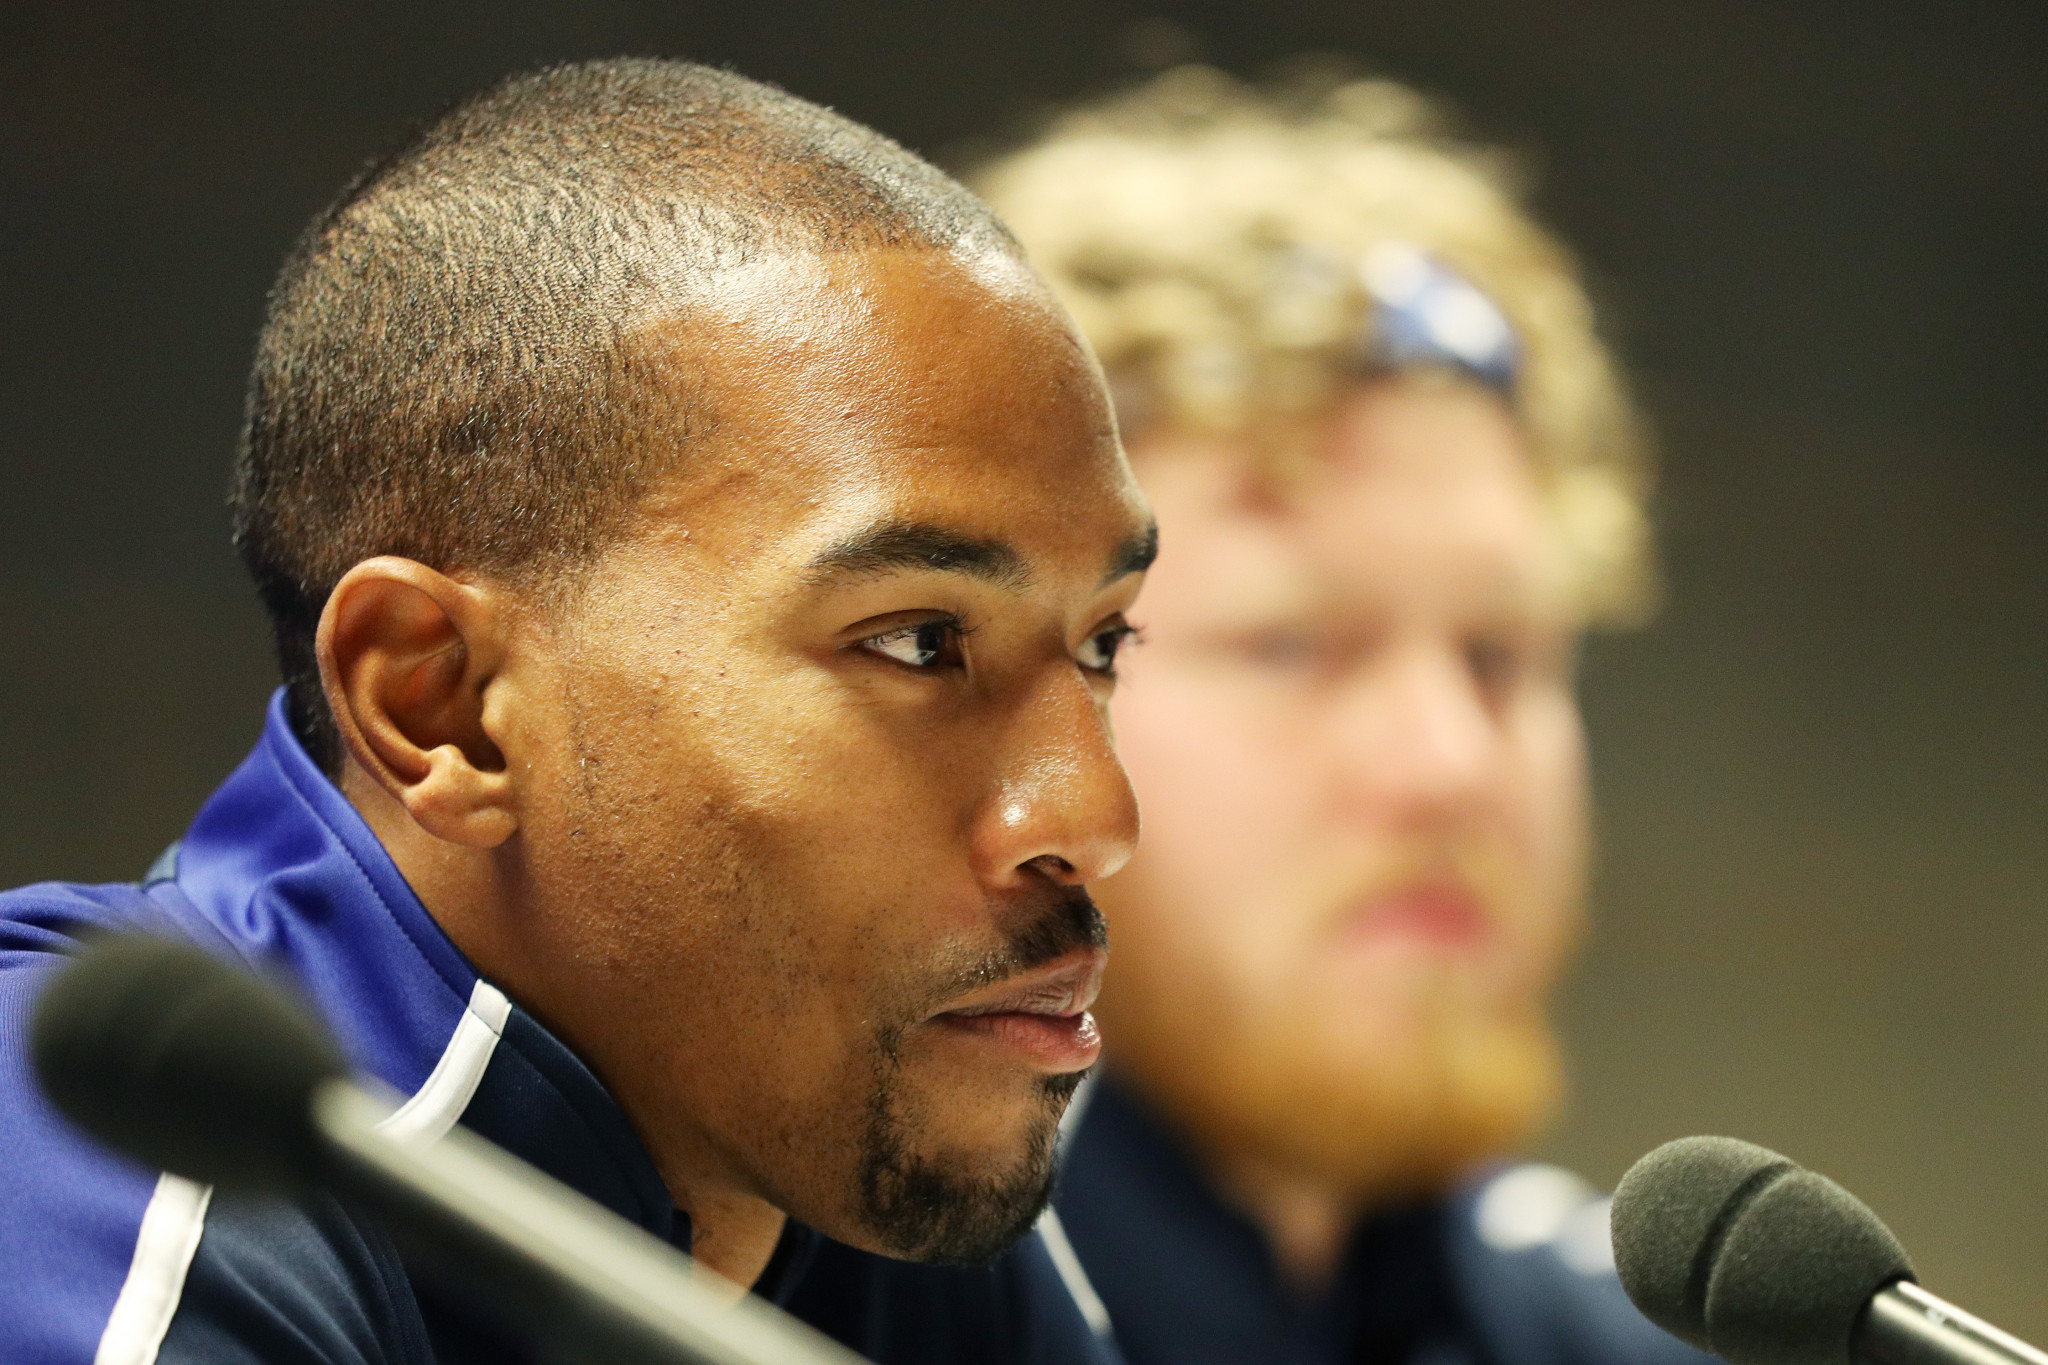 Taylor looking to work positively with World Athletics